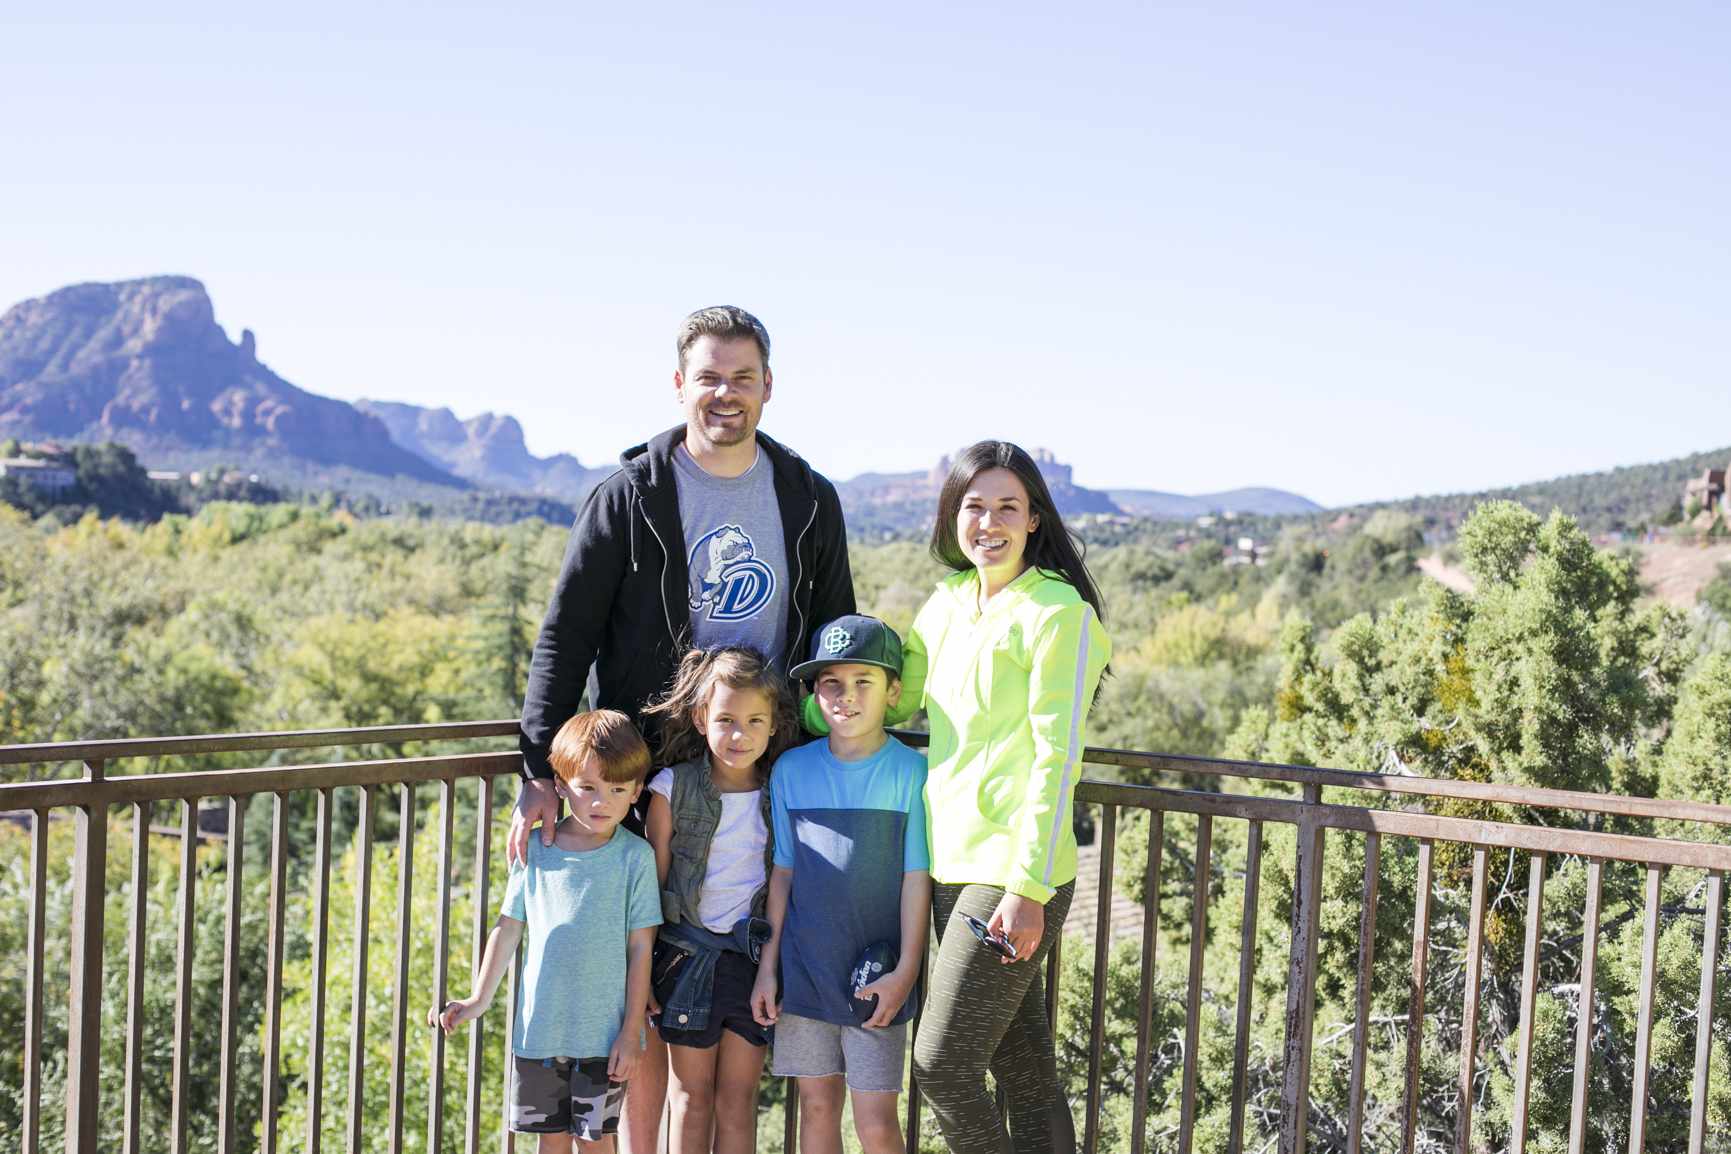 Family Friendly Hotels in Sedona Arizona